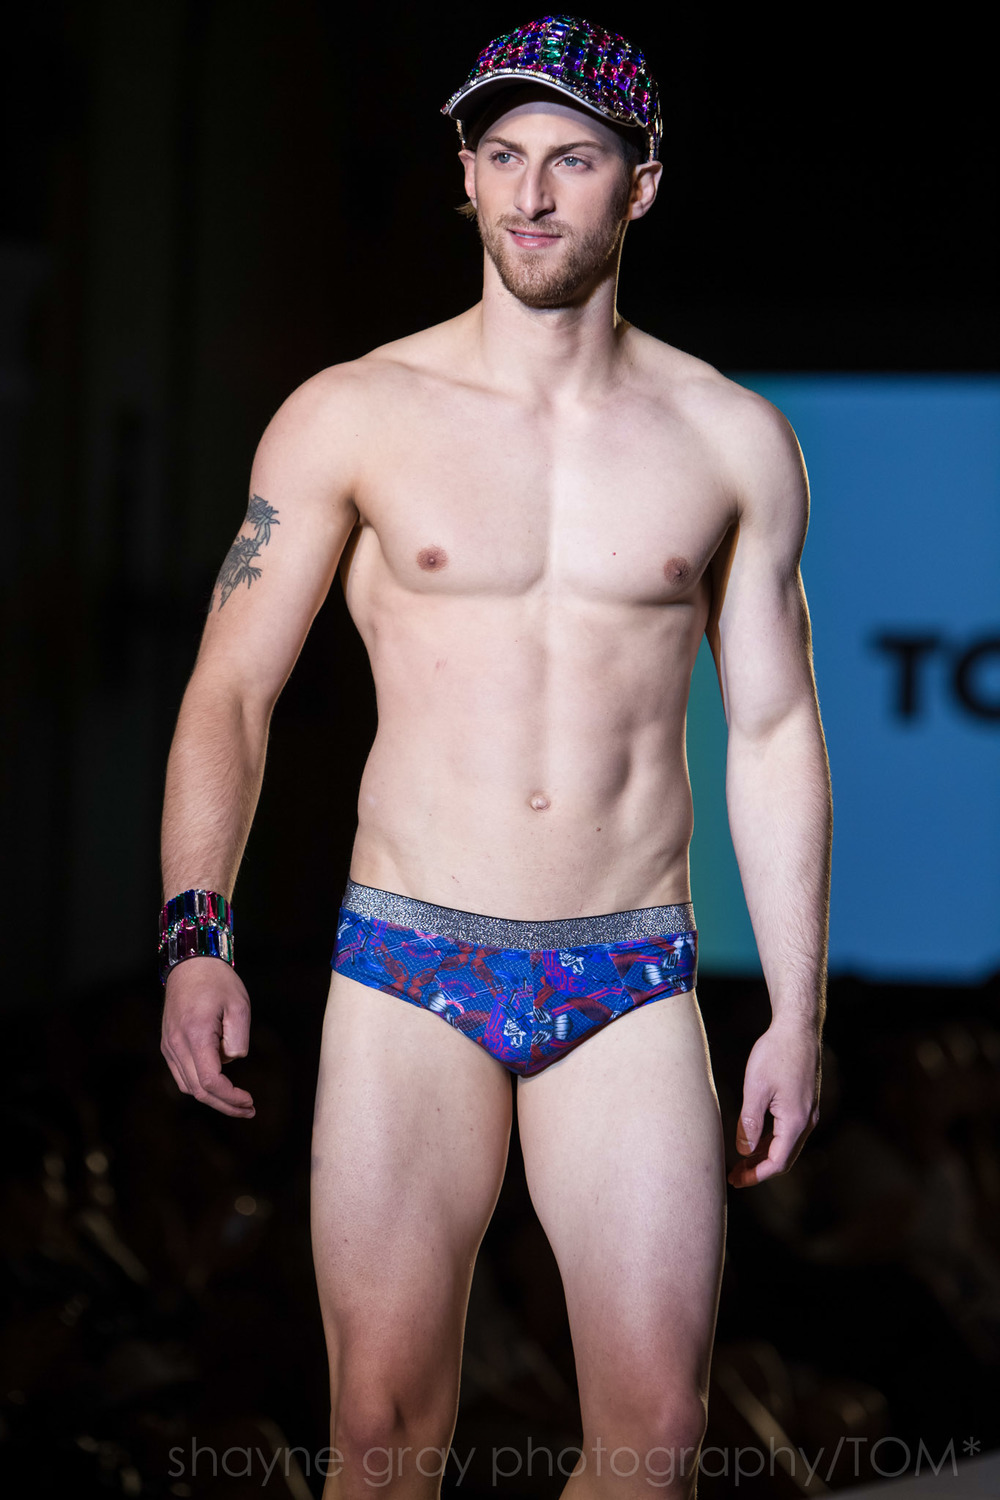 Shayne-Gray-Toronto-men's-fashion_week-TOM-paul-nathaphol-7945.jpg